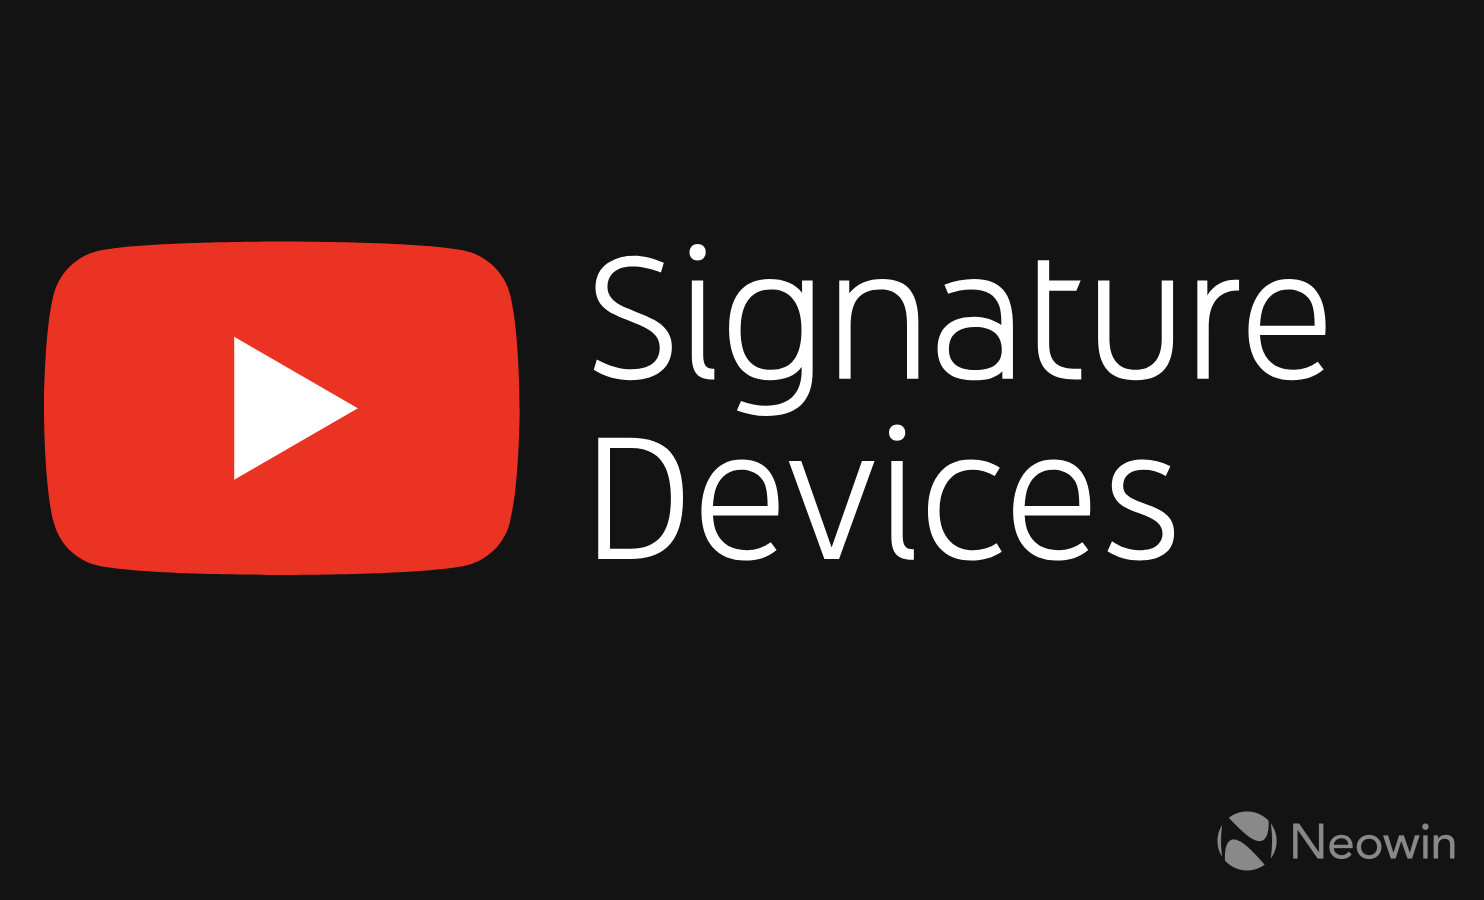 YouTube Signature Devices are handsets with the best YouTube watching experience